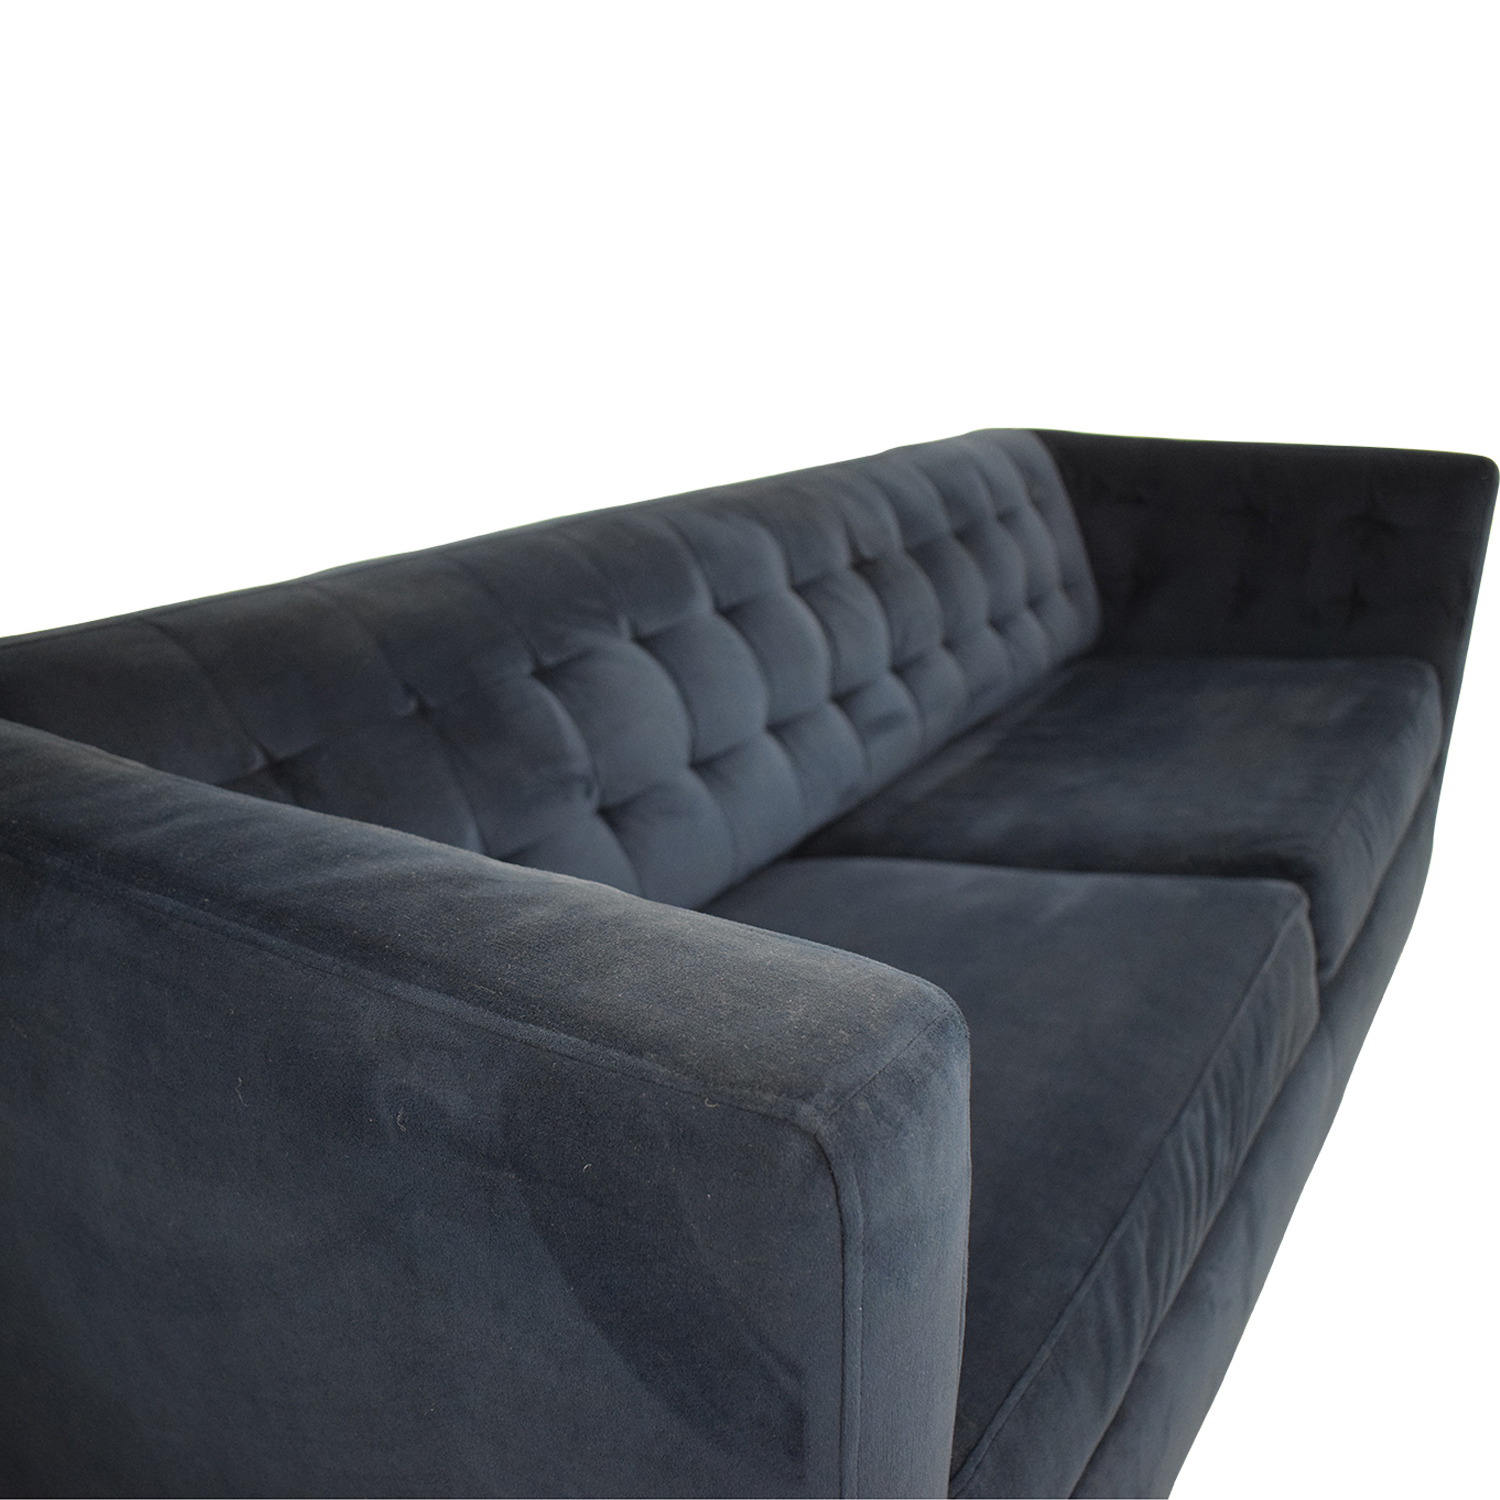 Remarkable 56 Off West Elm West Elm Rochester Queen Sleeper Sofa Sofas Short Links Chair Design For Home Short Linksinfo